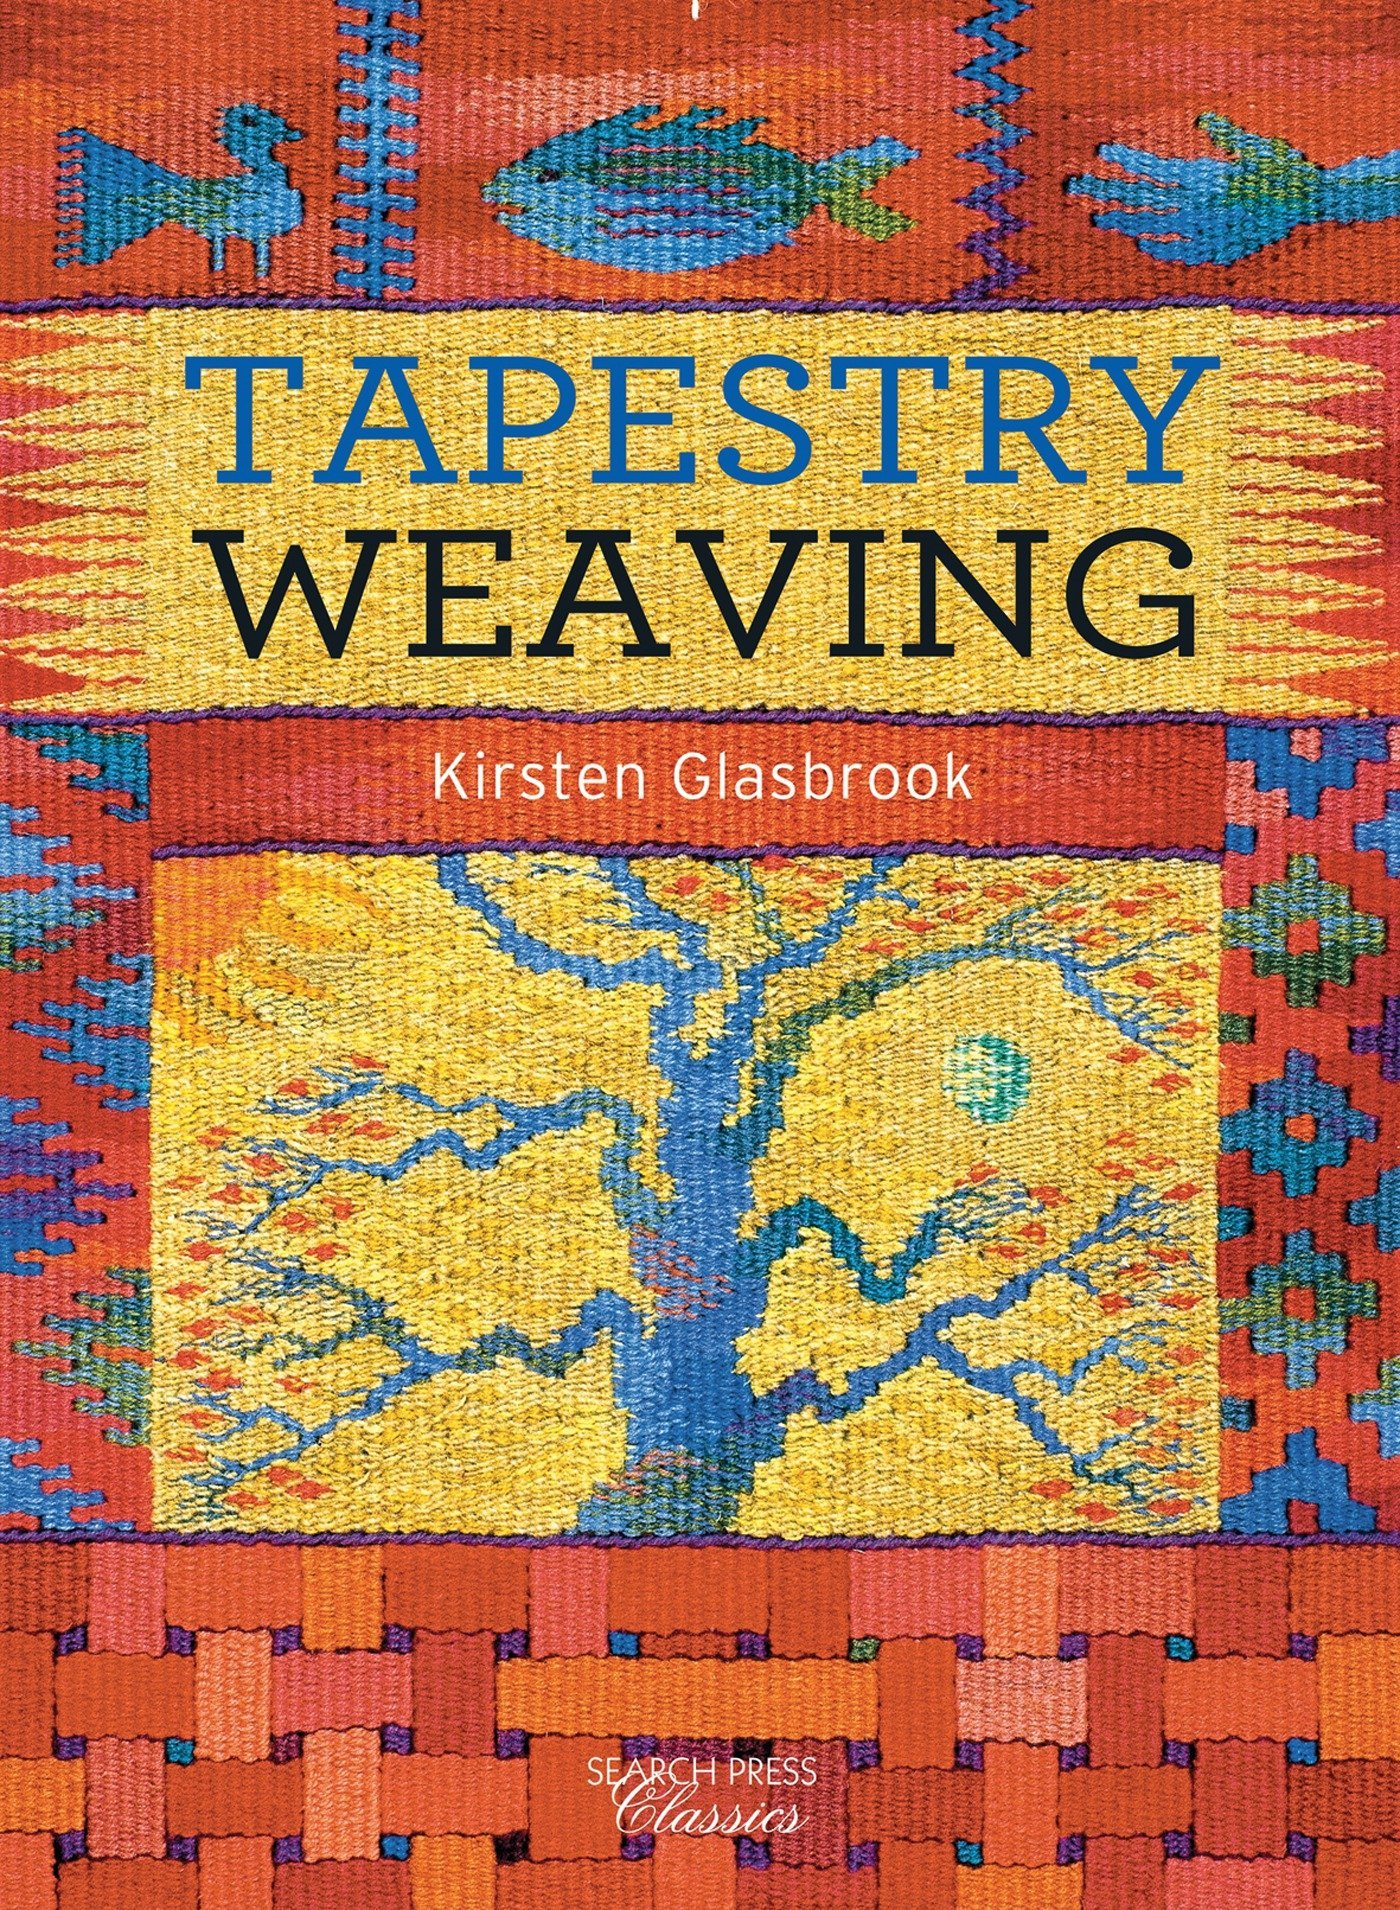 Tapestry Weaving (Search Press Classics)